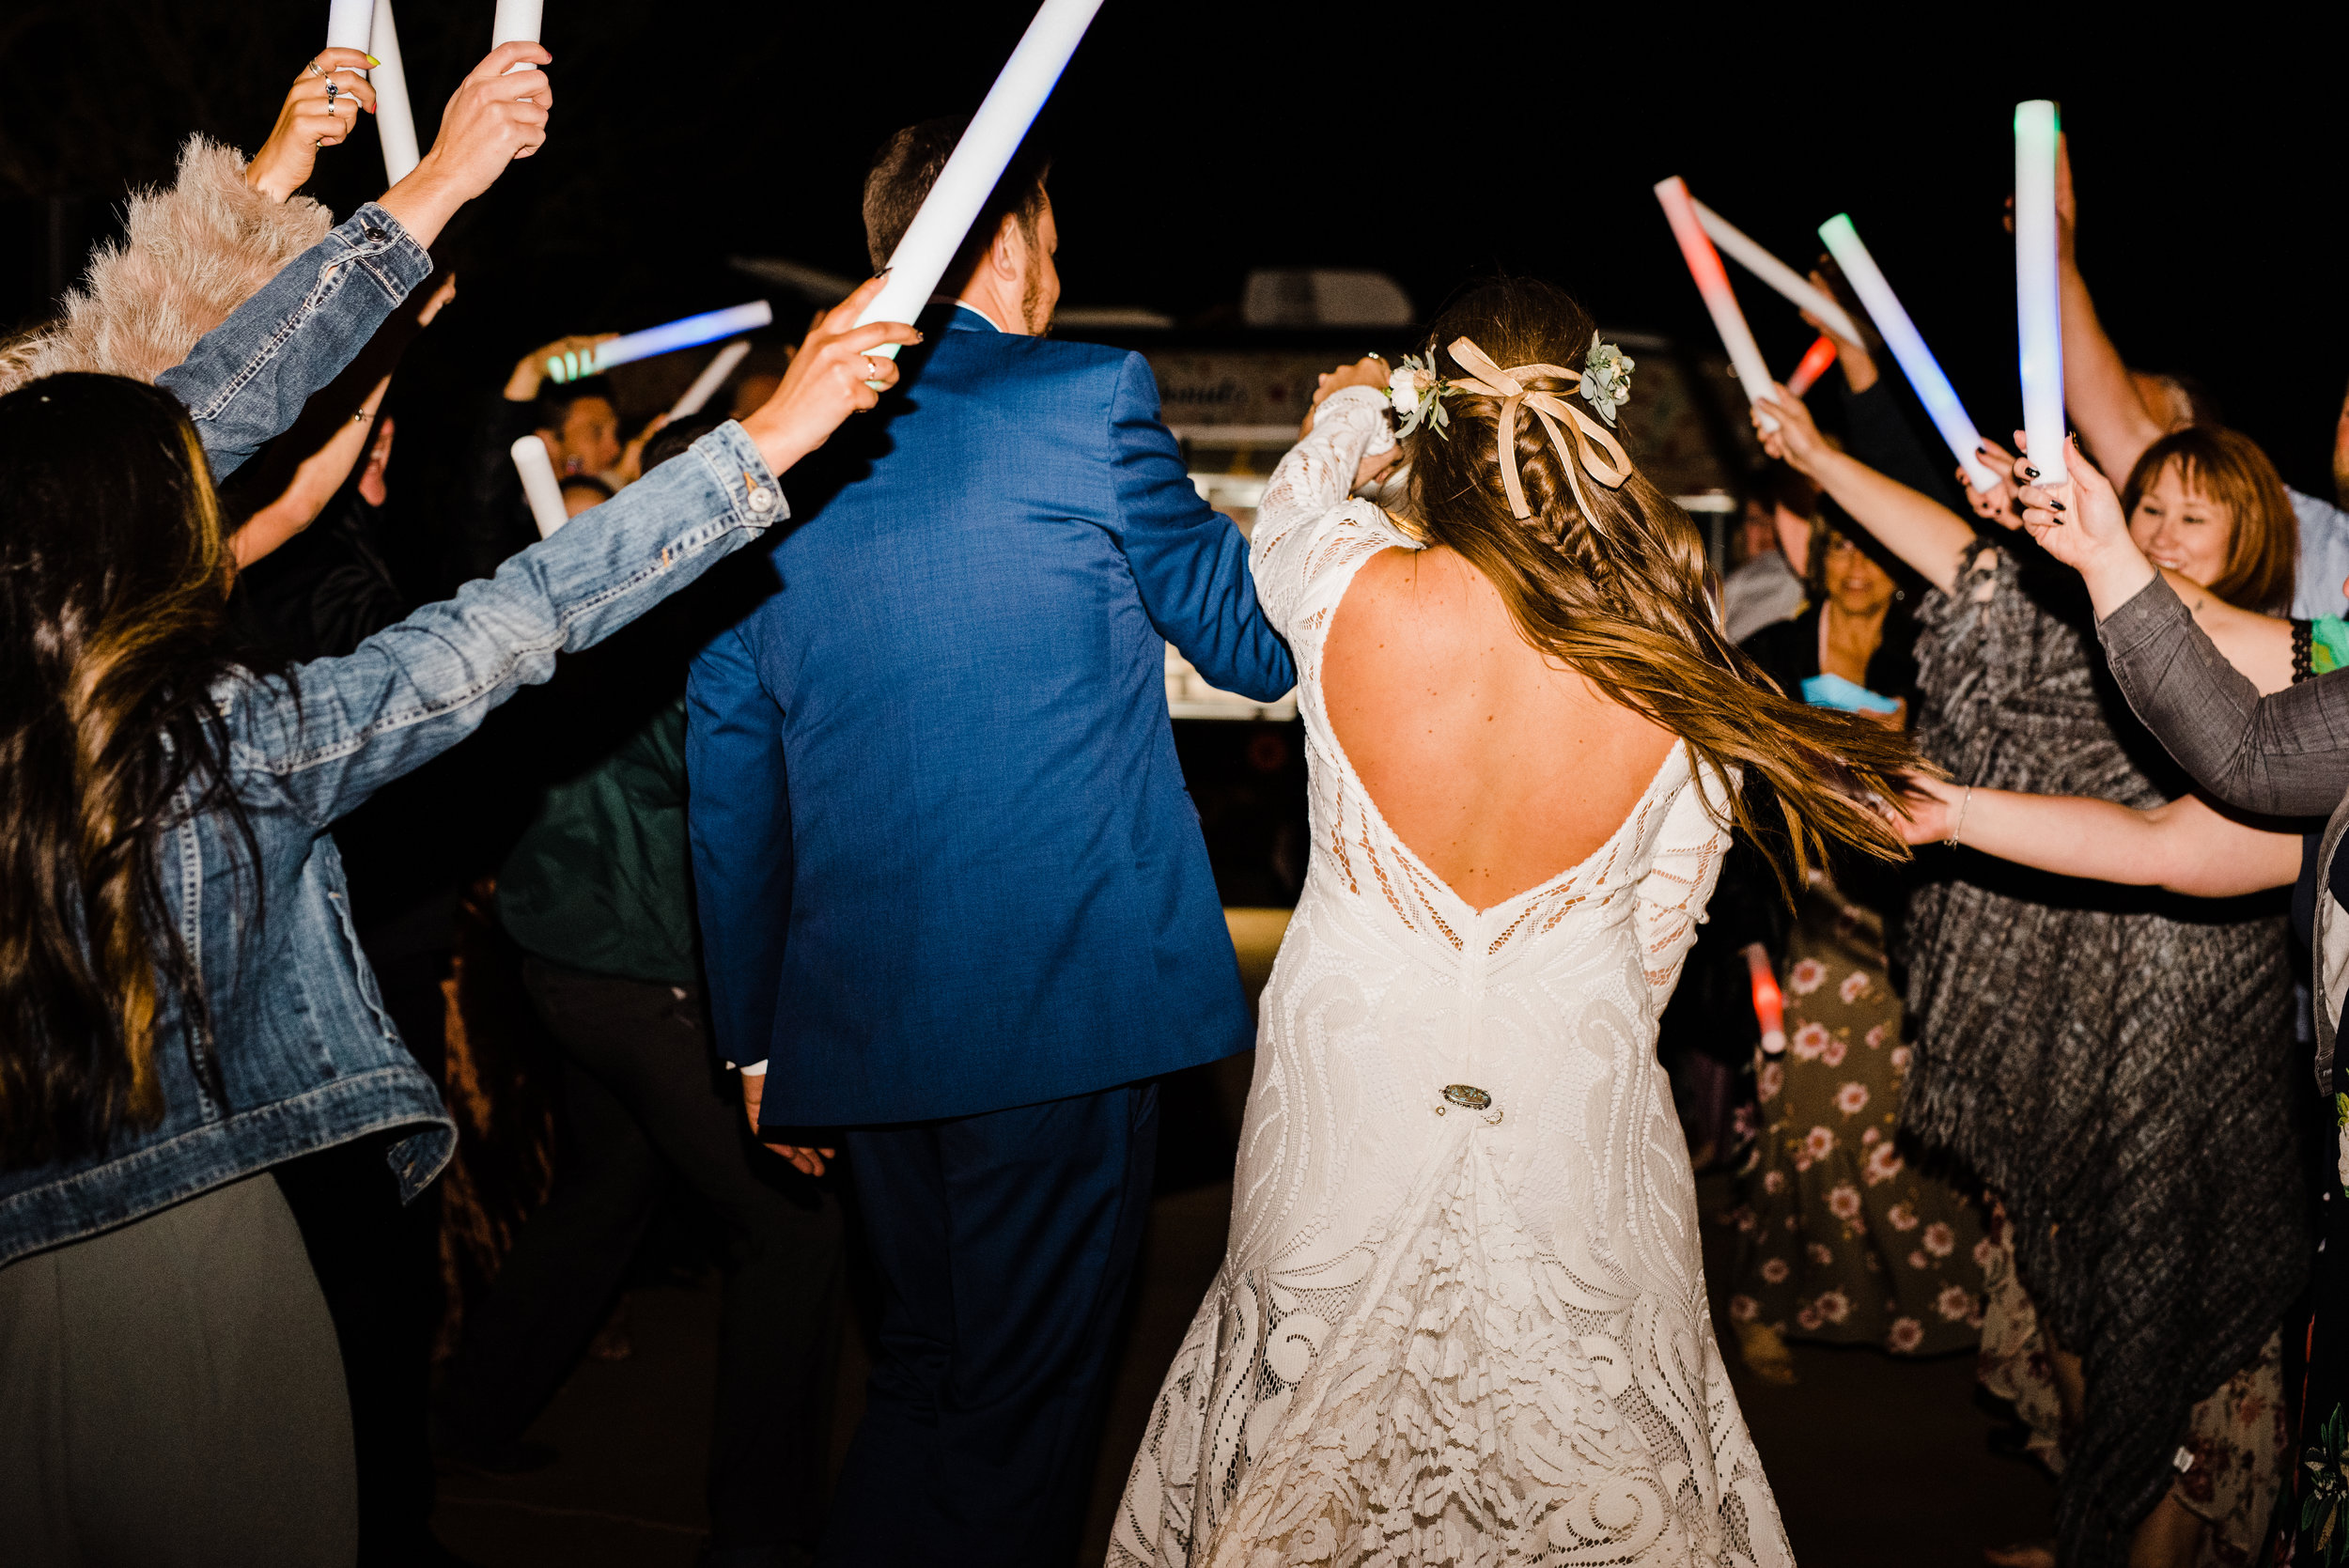 grand finale wedding exit with glow sticks at tumbleweed sanctuary